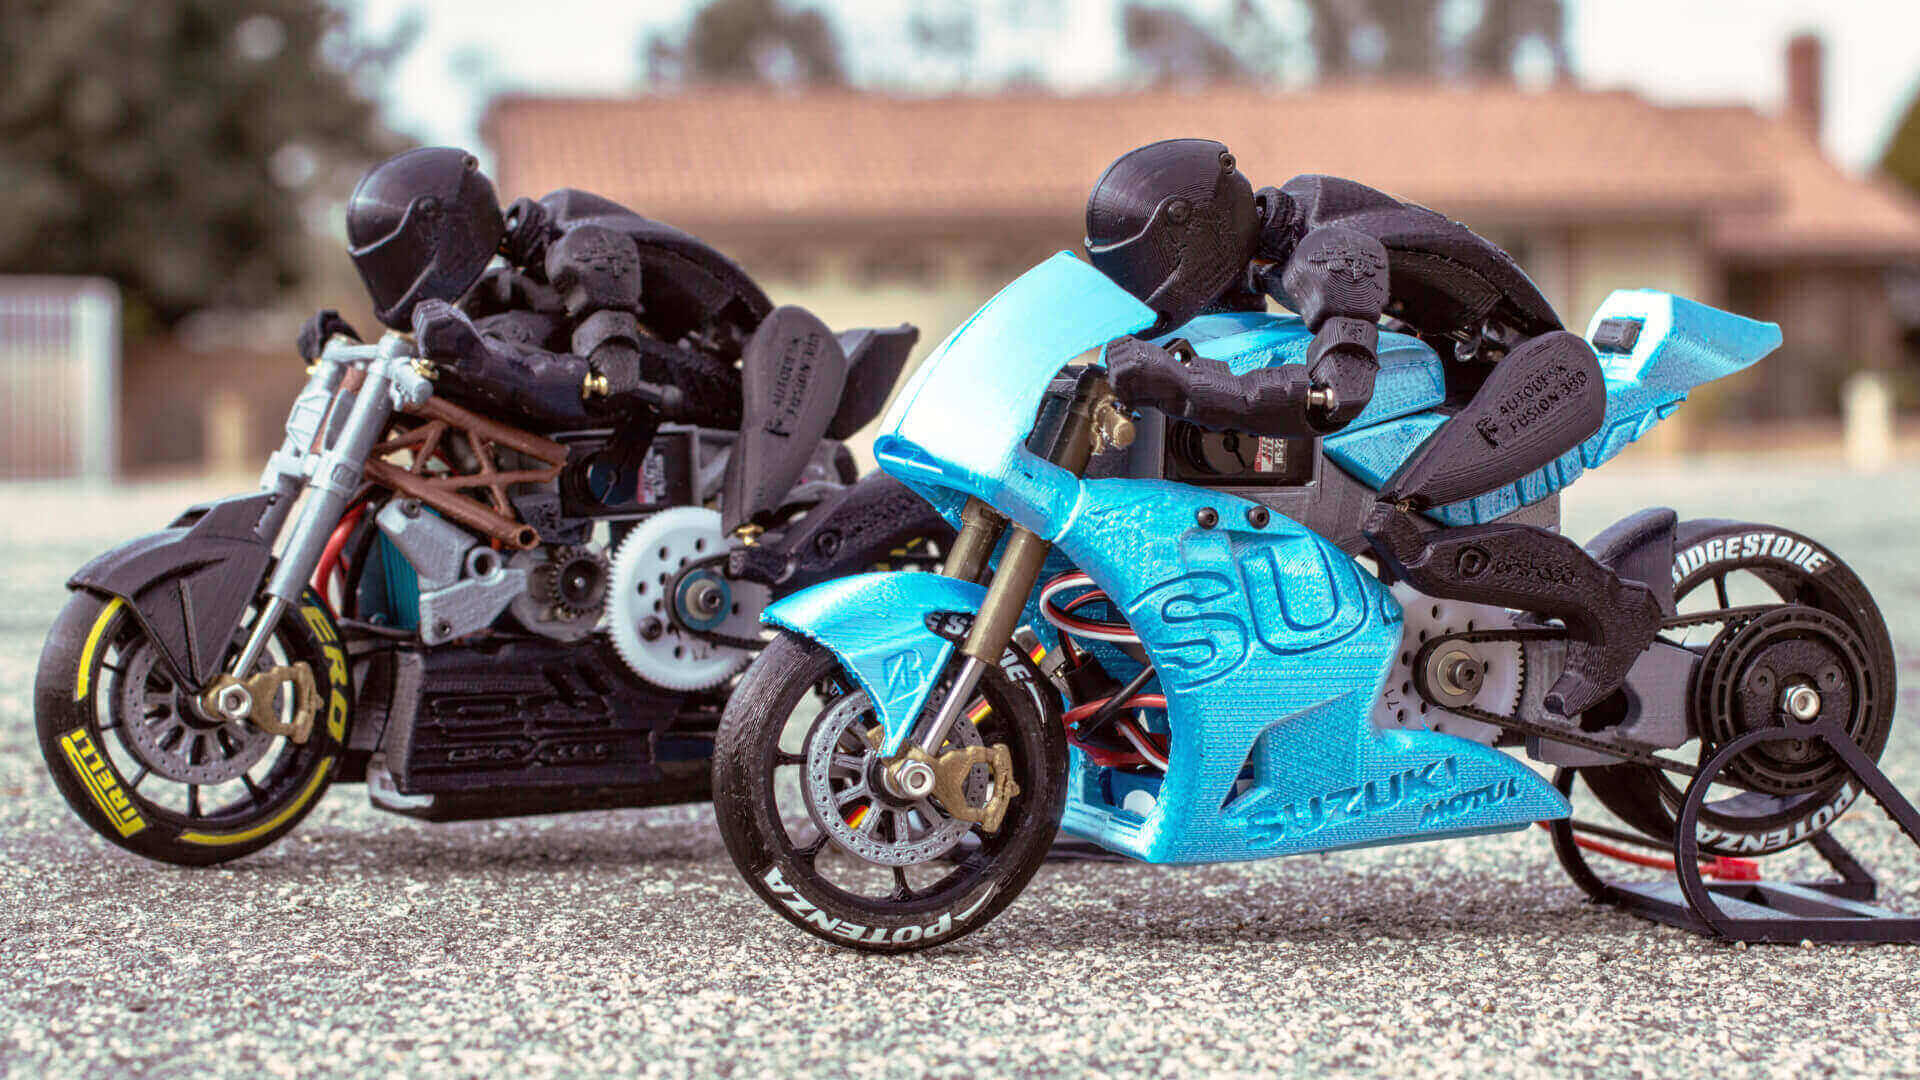 3D Print Your Own Functional RC Motorcycles | All3DP